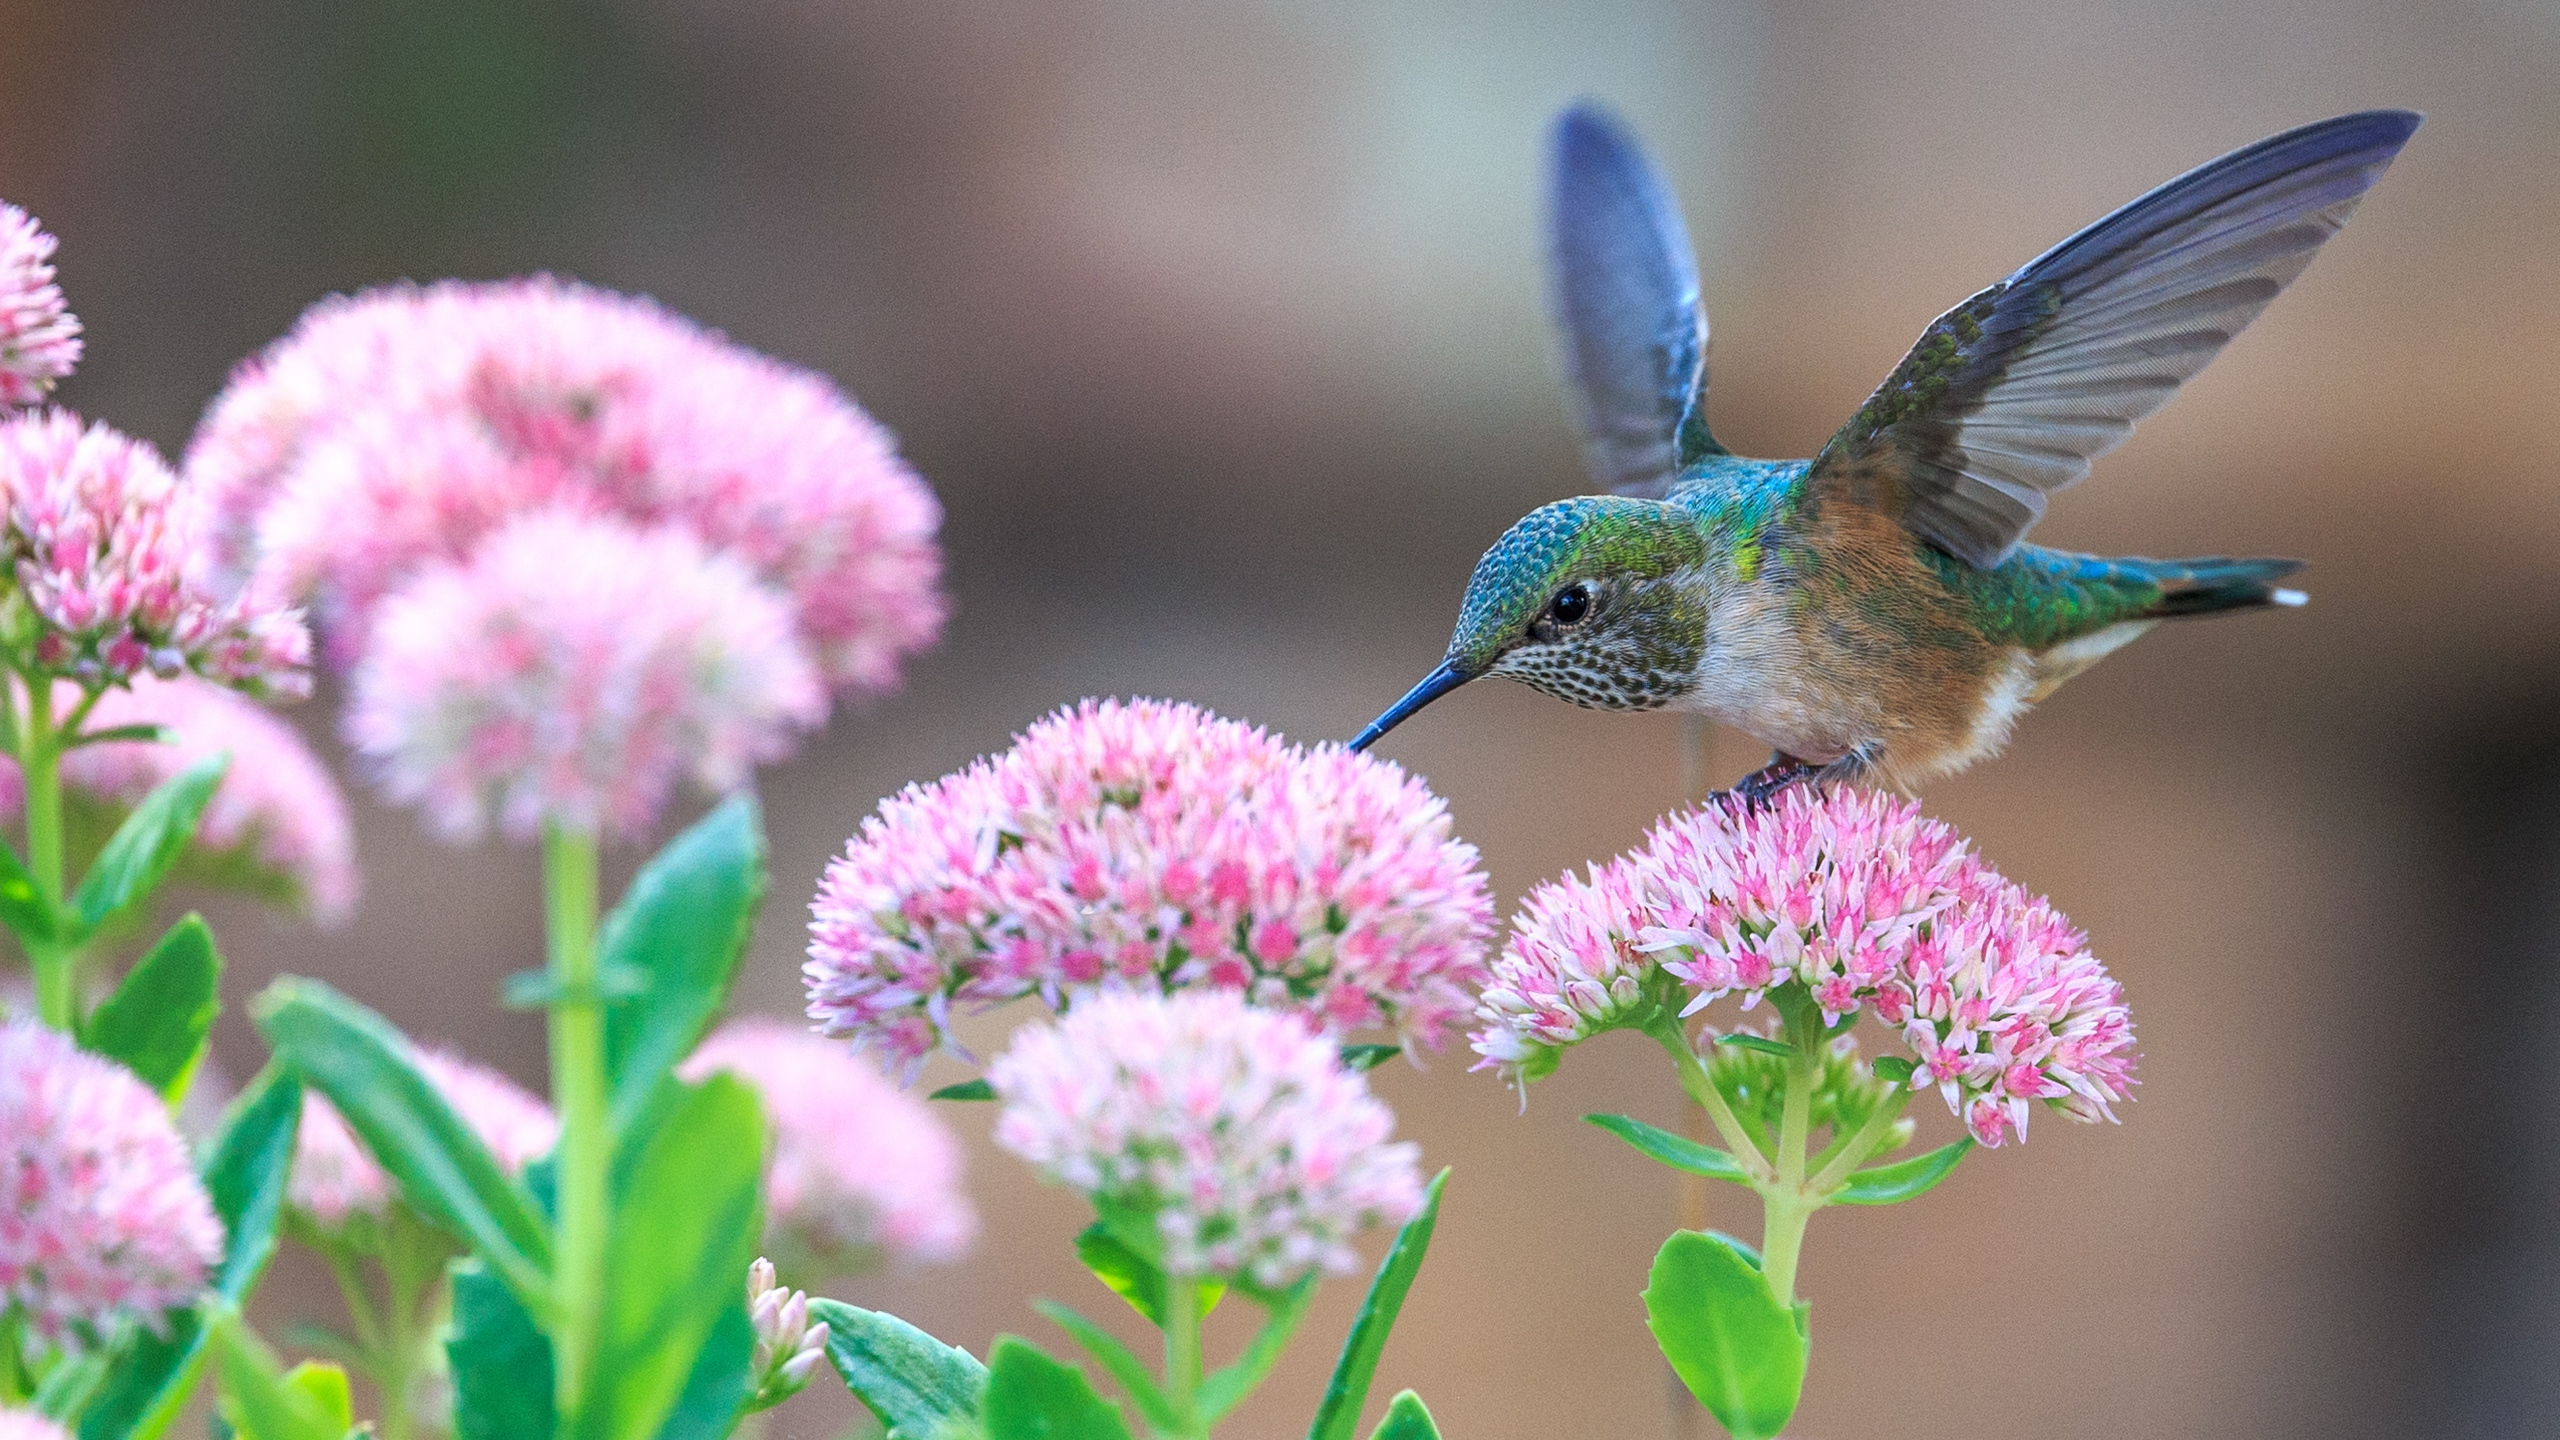 Bird With Flowers Wallpapers Wallpaper Cave Download and share awesome cool background hd mobile phone wallpapers. flowers wallpapers wallpaper cave